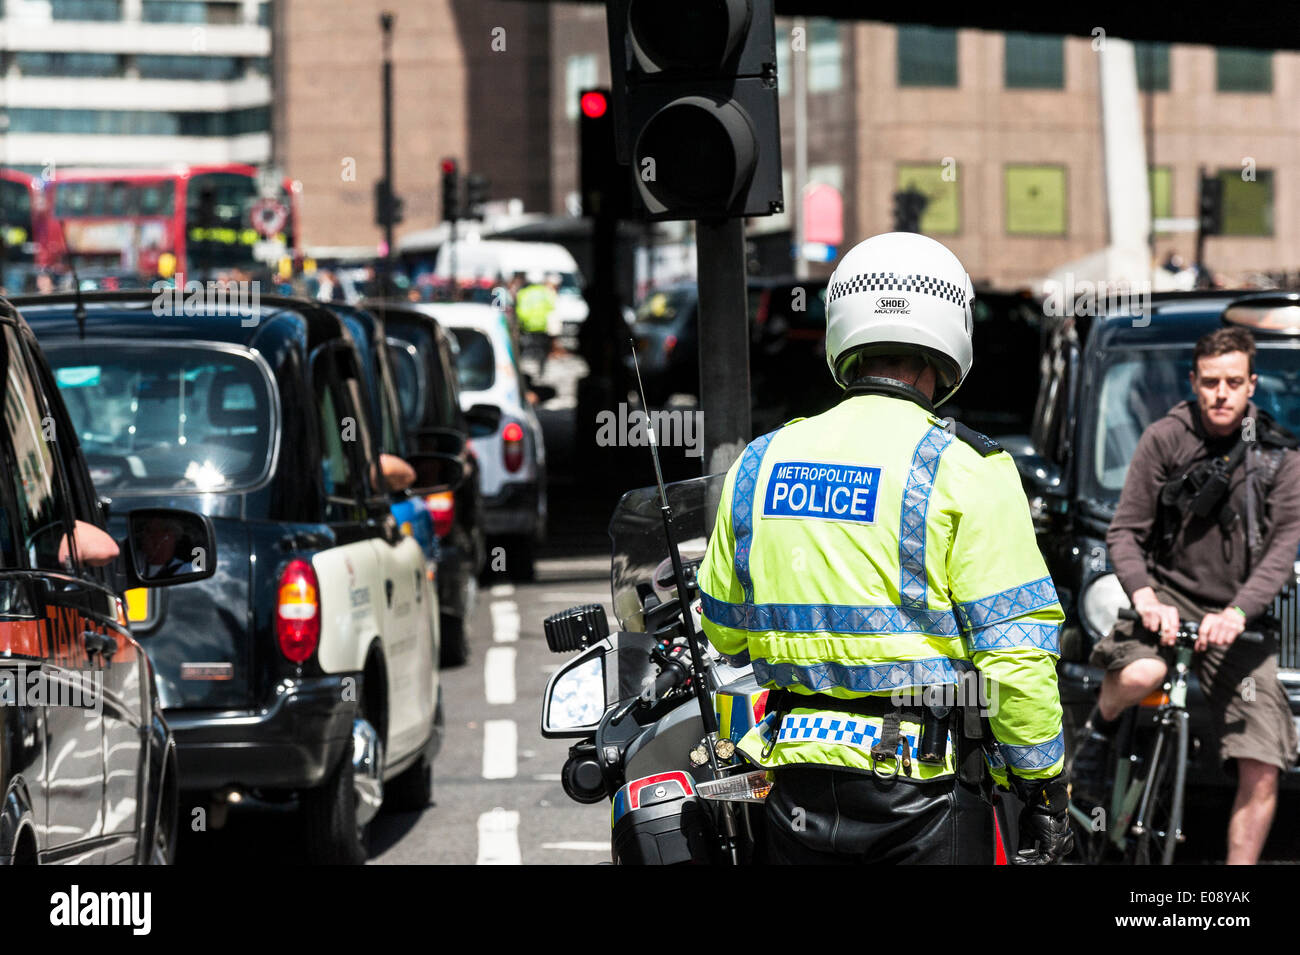 London, UK. 6th May 2014, A Metropolitan Motorcycle officer watches helplessly as taxis jam the streets of Southwark in protest over the refusal to place a Black Cab taxi rank outside the entrance to The Shard. Photographer:  Gordon Scammell/Alamy Live News - Stock Image